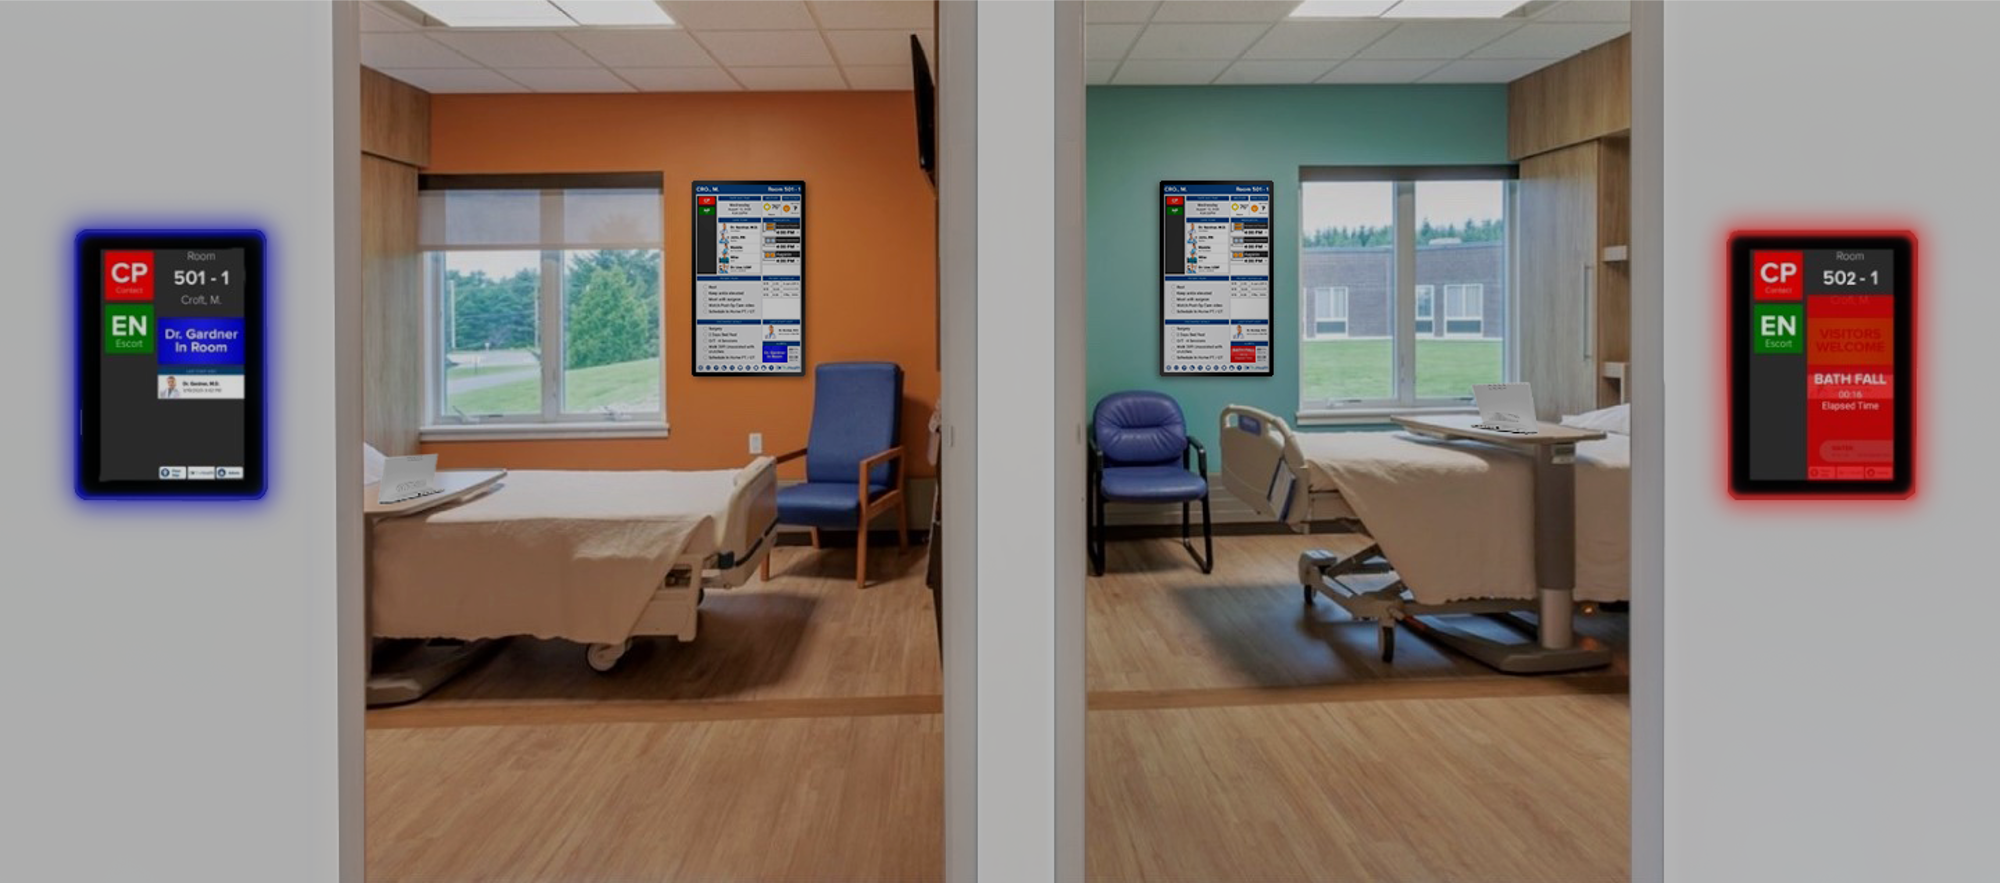 HCI Interactive Patient Care for Patient Education, Patient Entertainment and Patient Engagement. Optimizing healthcare workflows through real-time interactive hospital whiteboard displays integrated across the hospital enterprise.